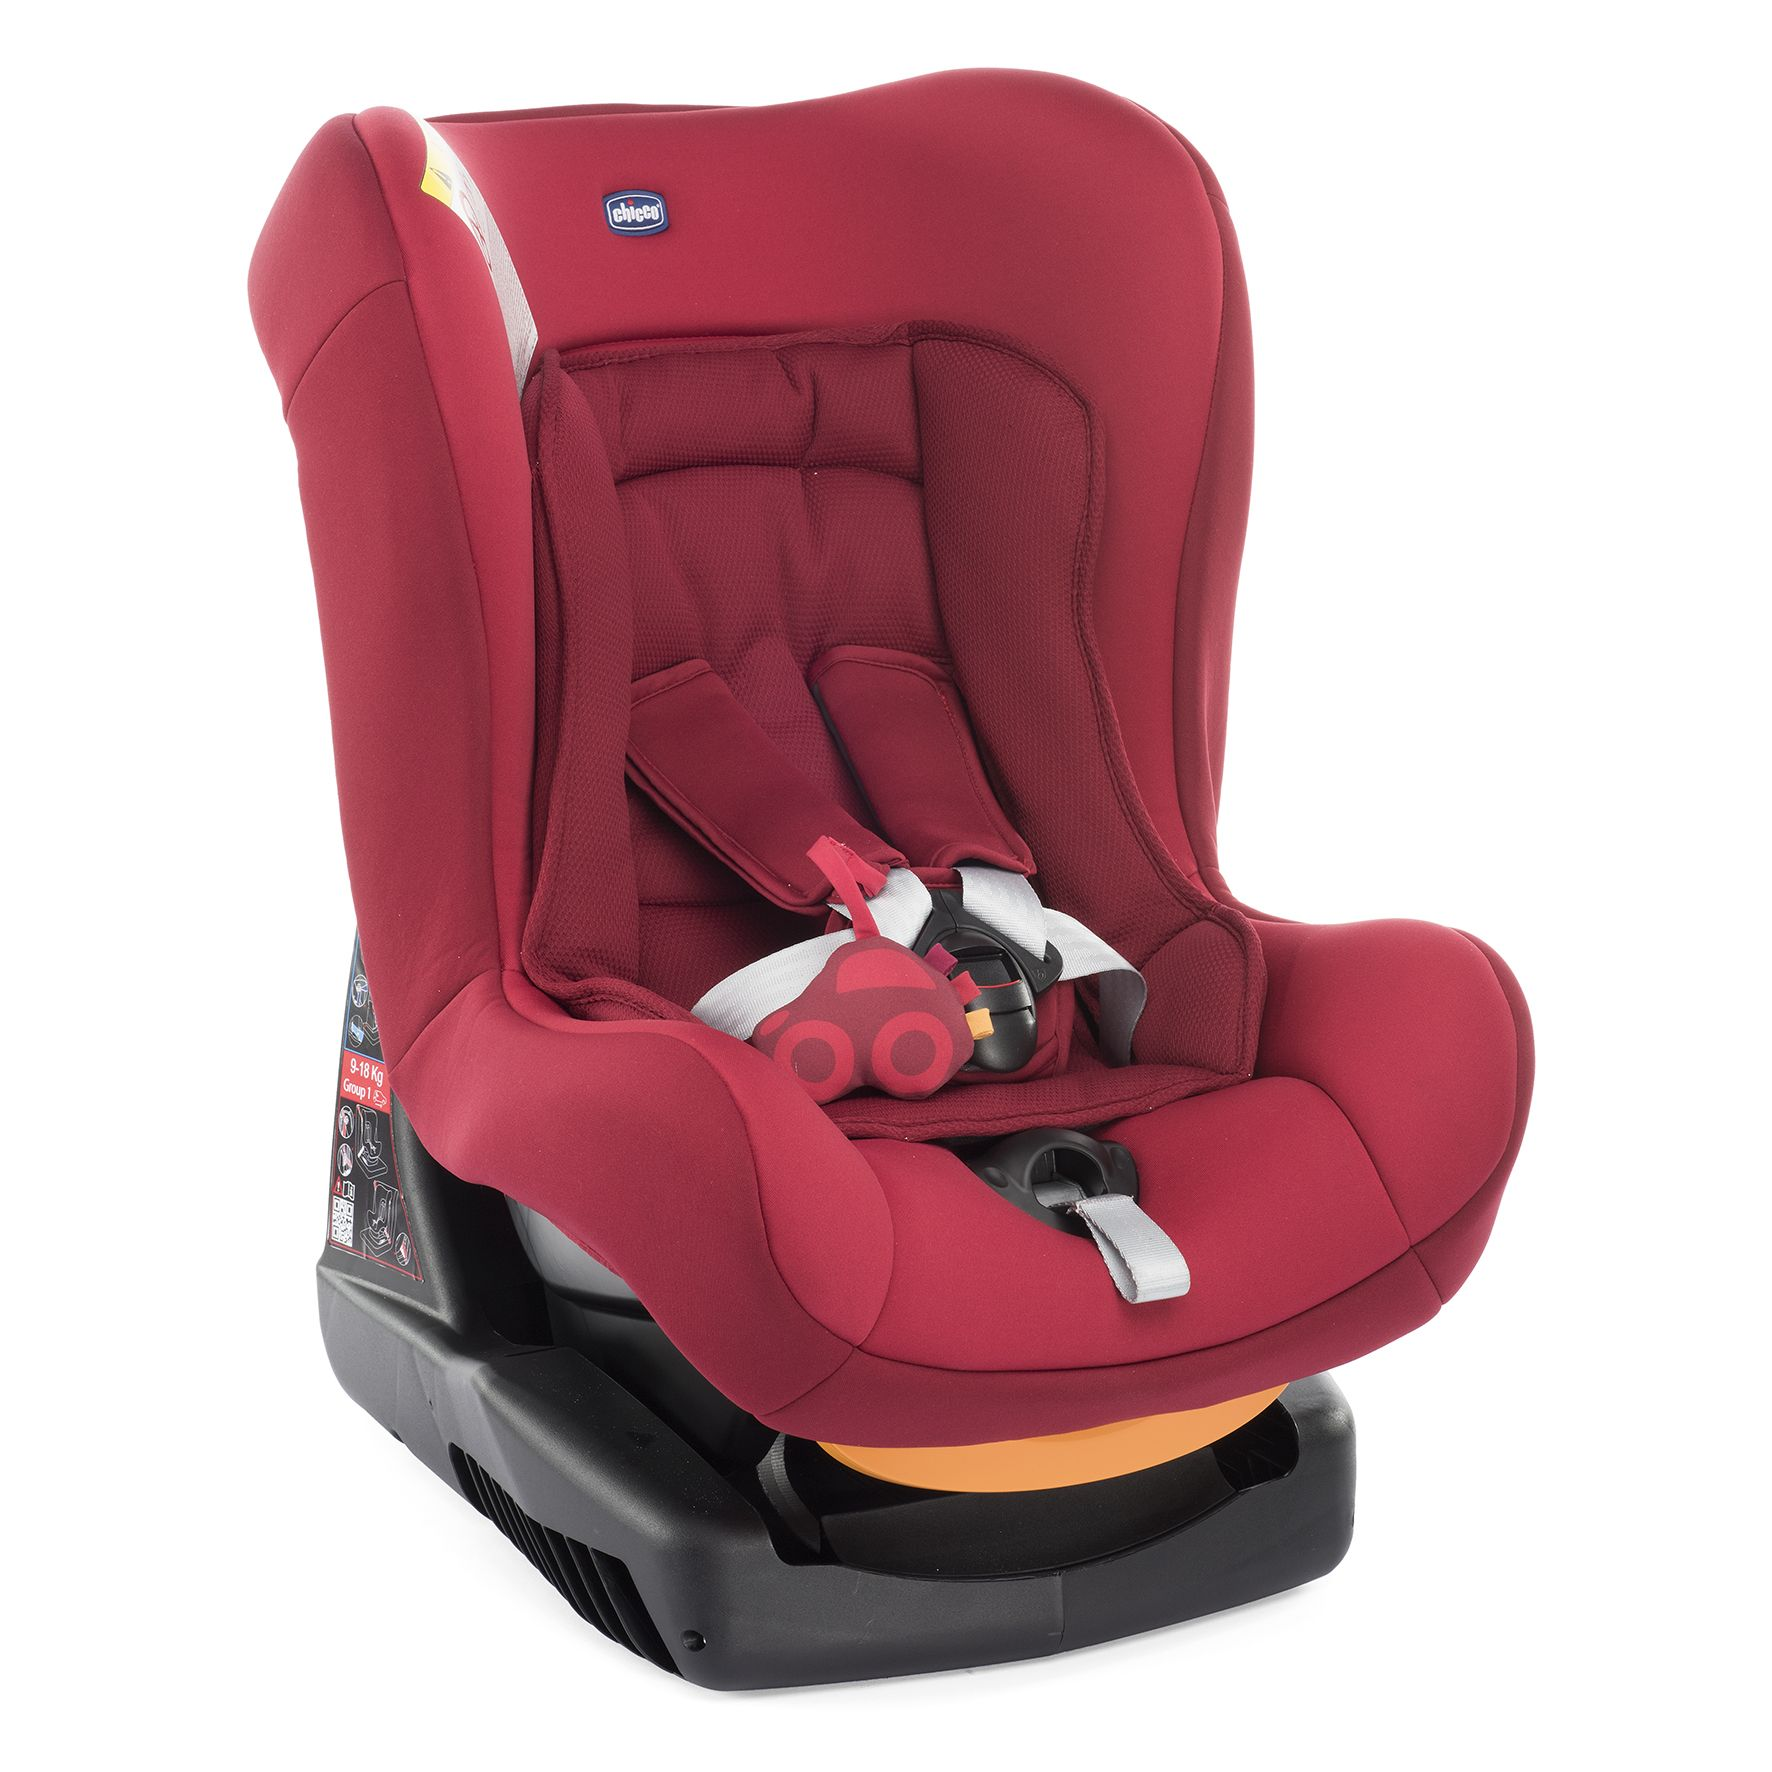 Si ge d enfant chicco cosmos gr 0 1 2018 red passion for Siege enfant